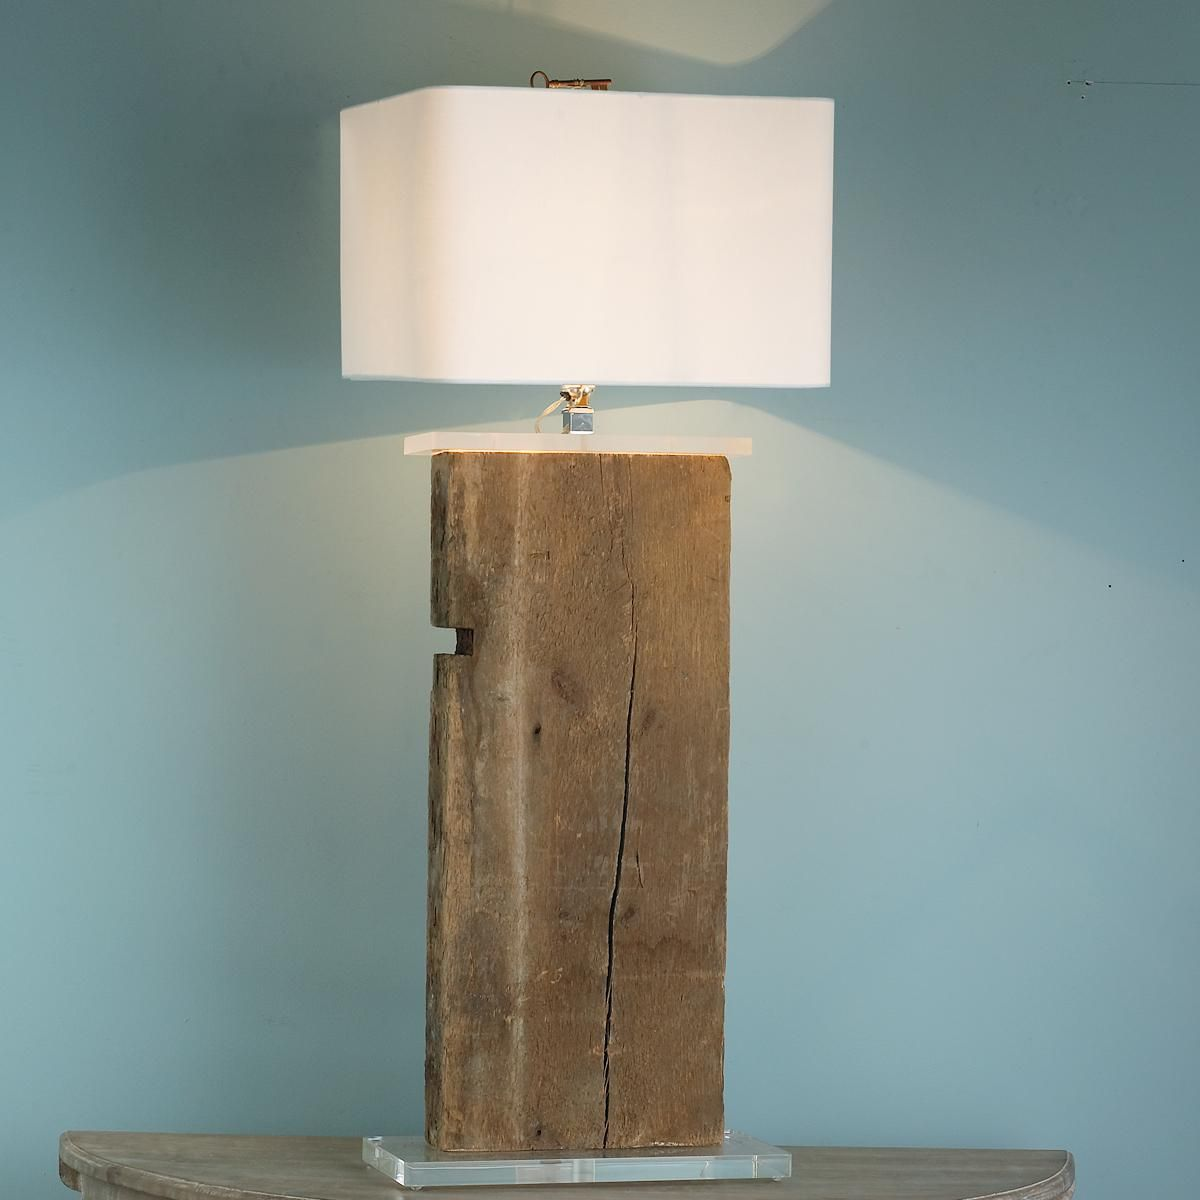 Antique 1828 Barnwood Beam Table Lamp Sold As A Pair Rustic Lamp Shades Antique Lamp Shades Table Lamp Shades